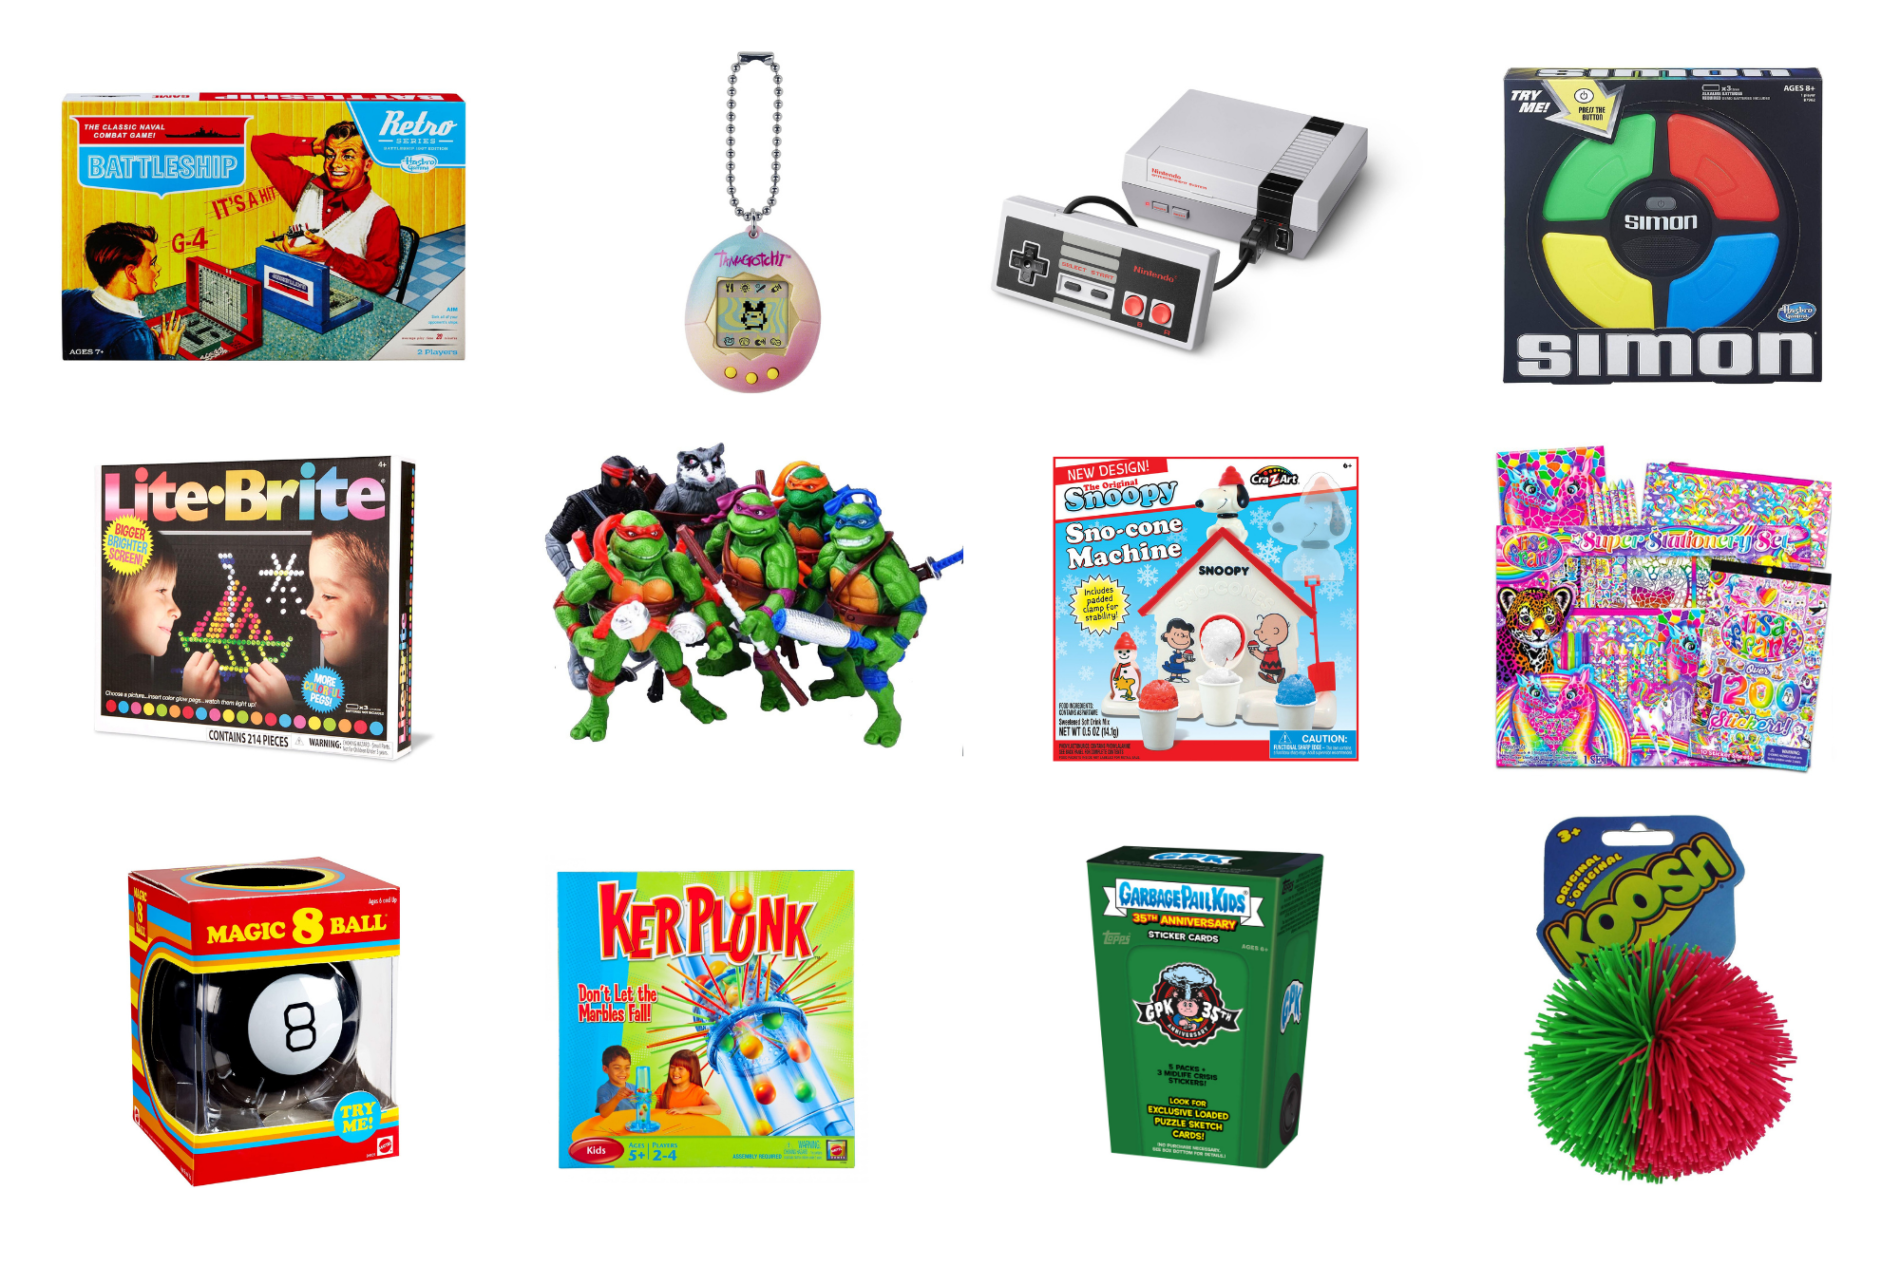 retro toy gift options for the holidays